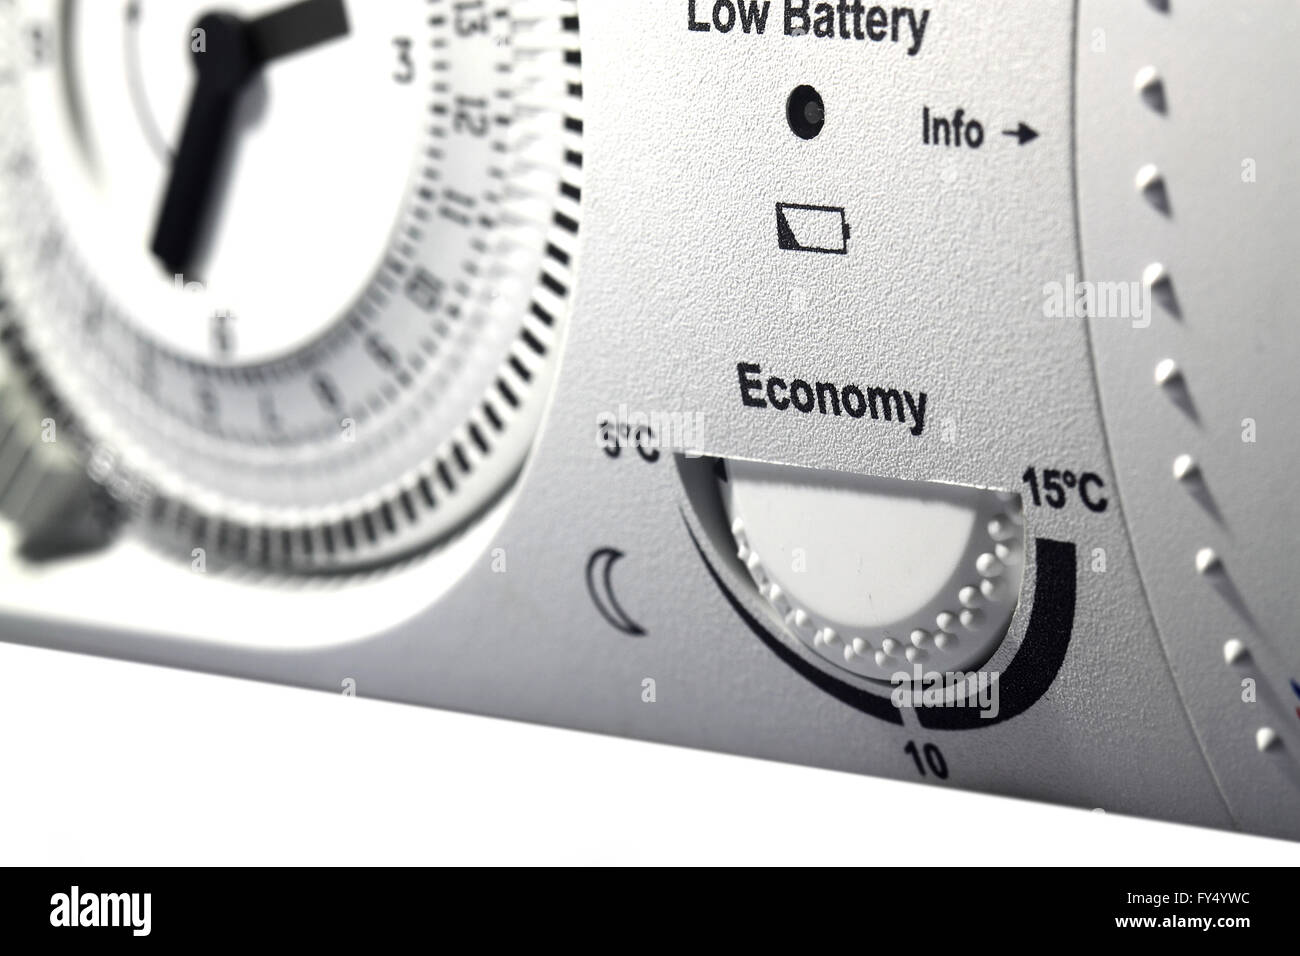 Thermostat timer central heating - Stock Image